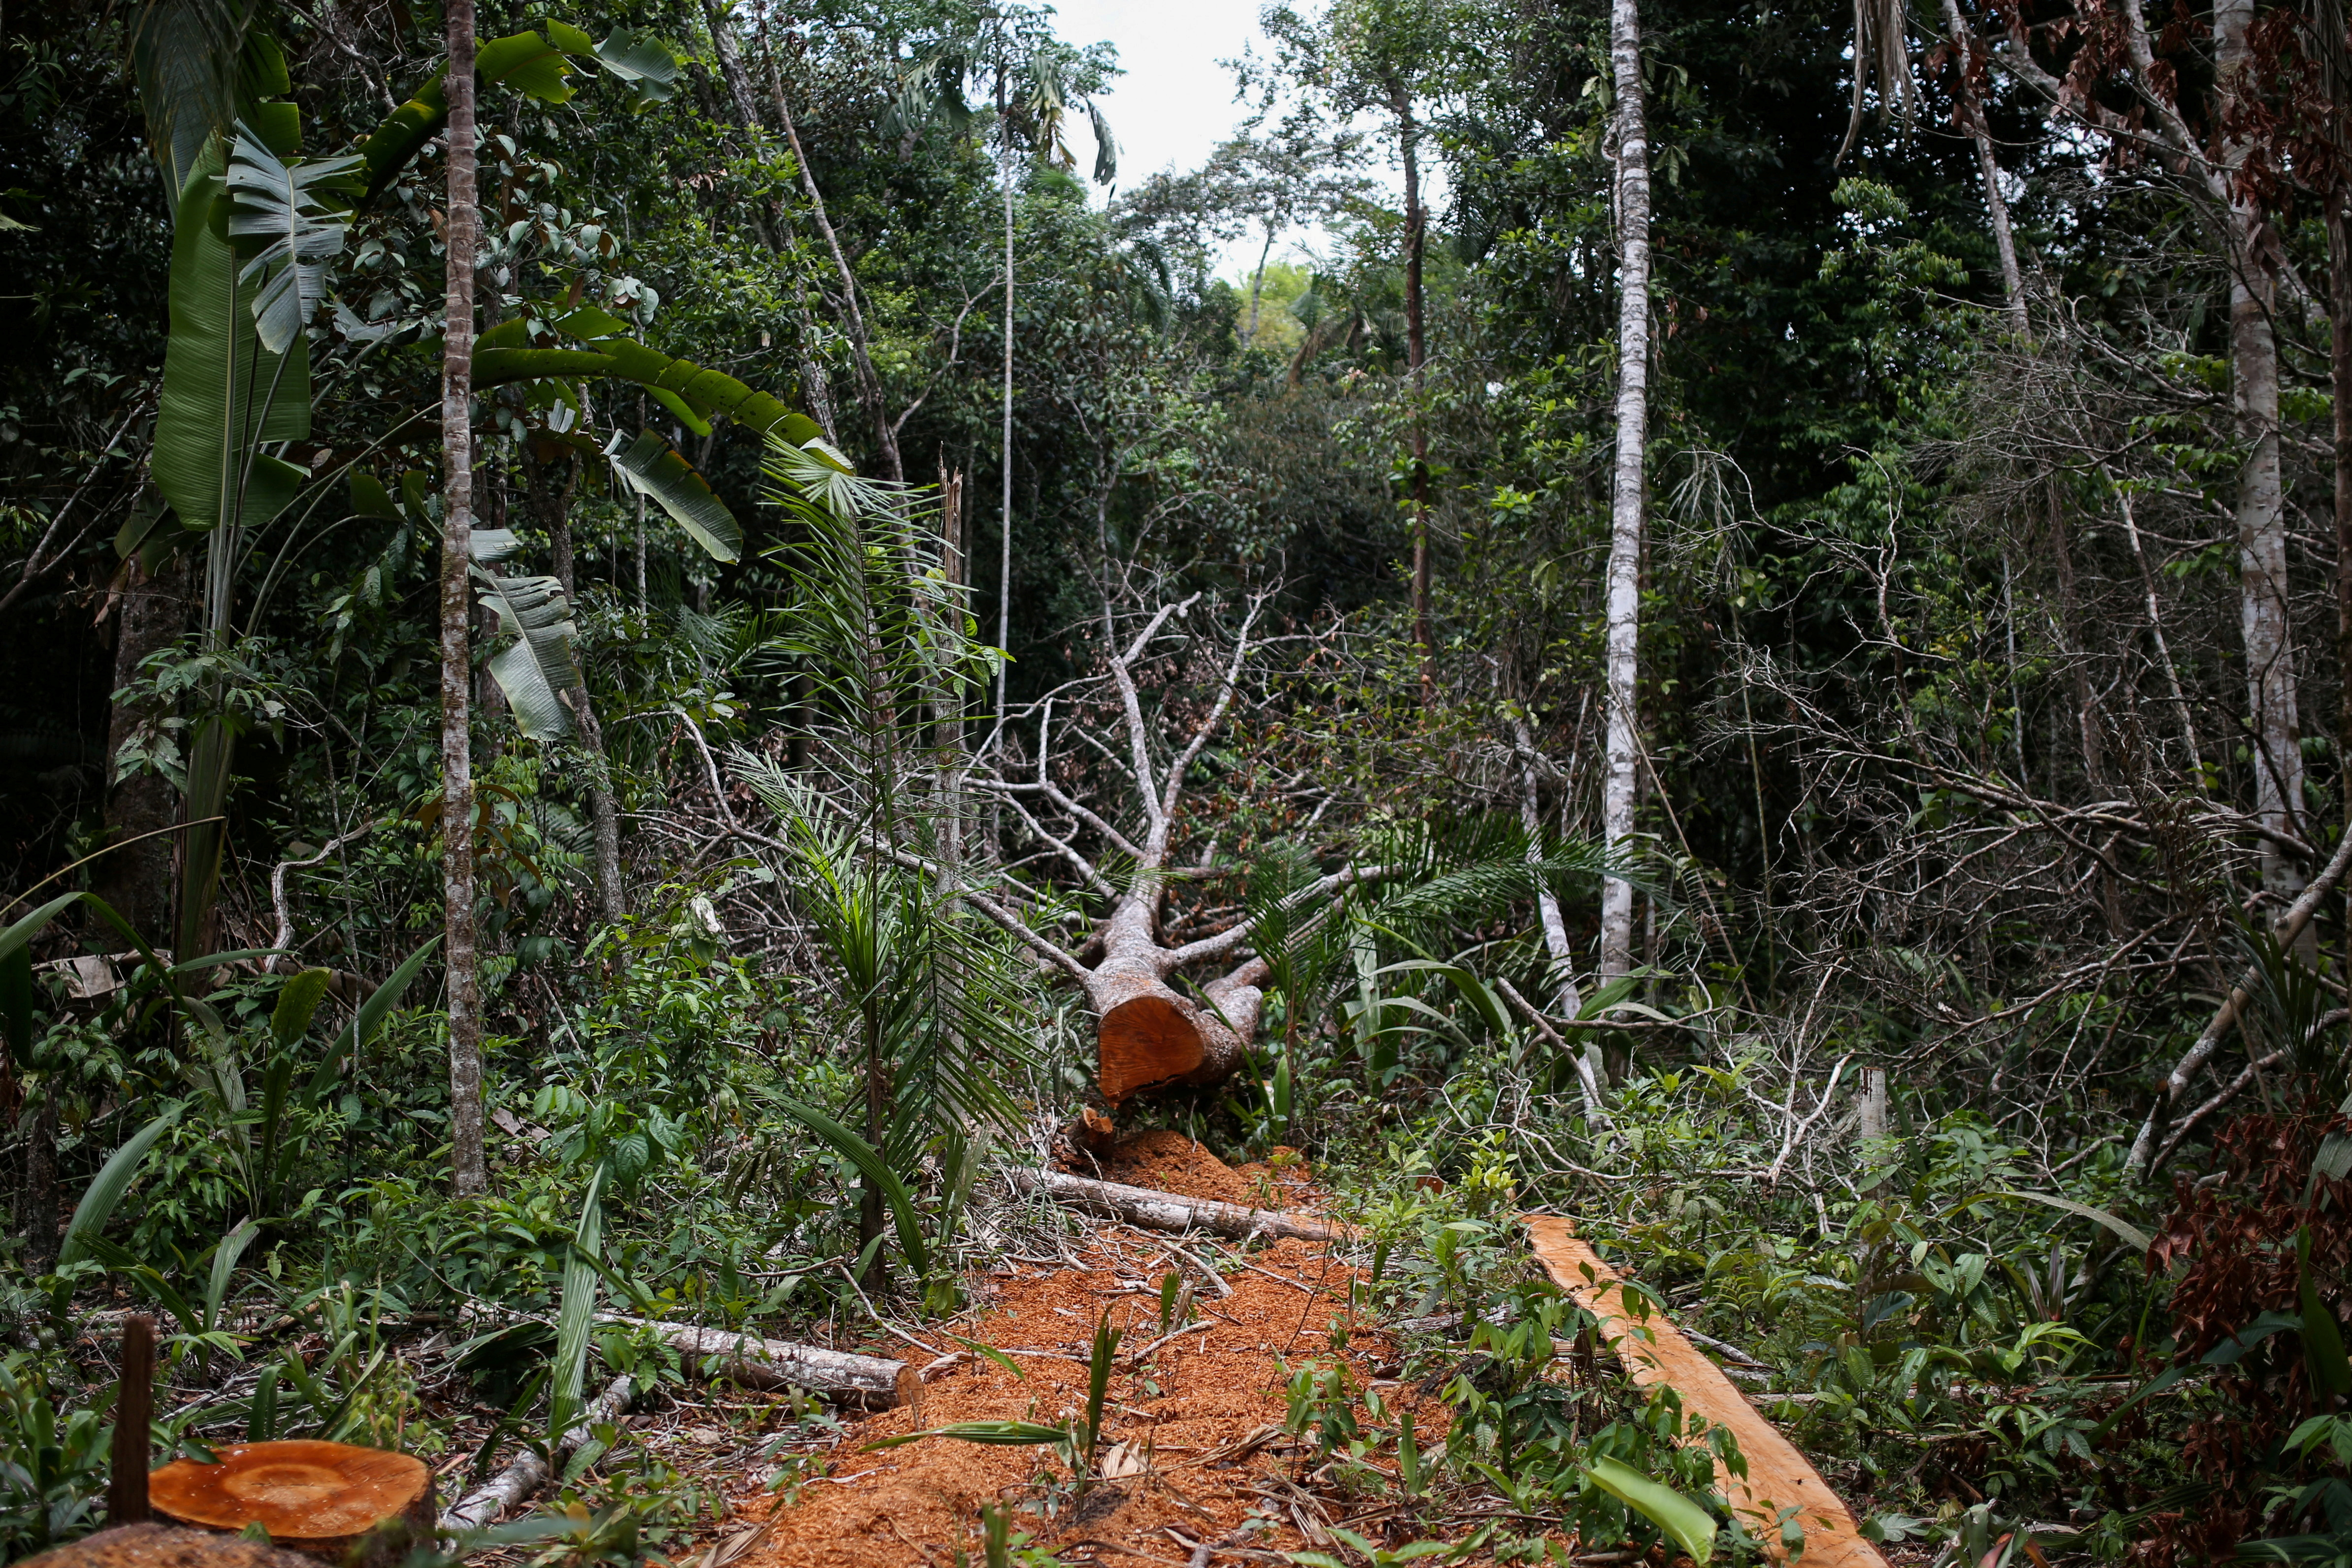 A felled tree is seen in the middle of a deforested area of the Yari plains, in Caqueta, Colombia March 3, 2021. Picture taken March 3, 2021. REUTERS/Luisa Gonzalez